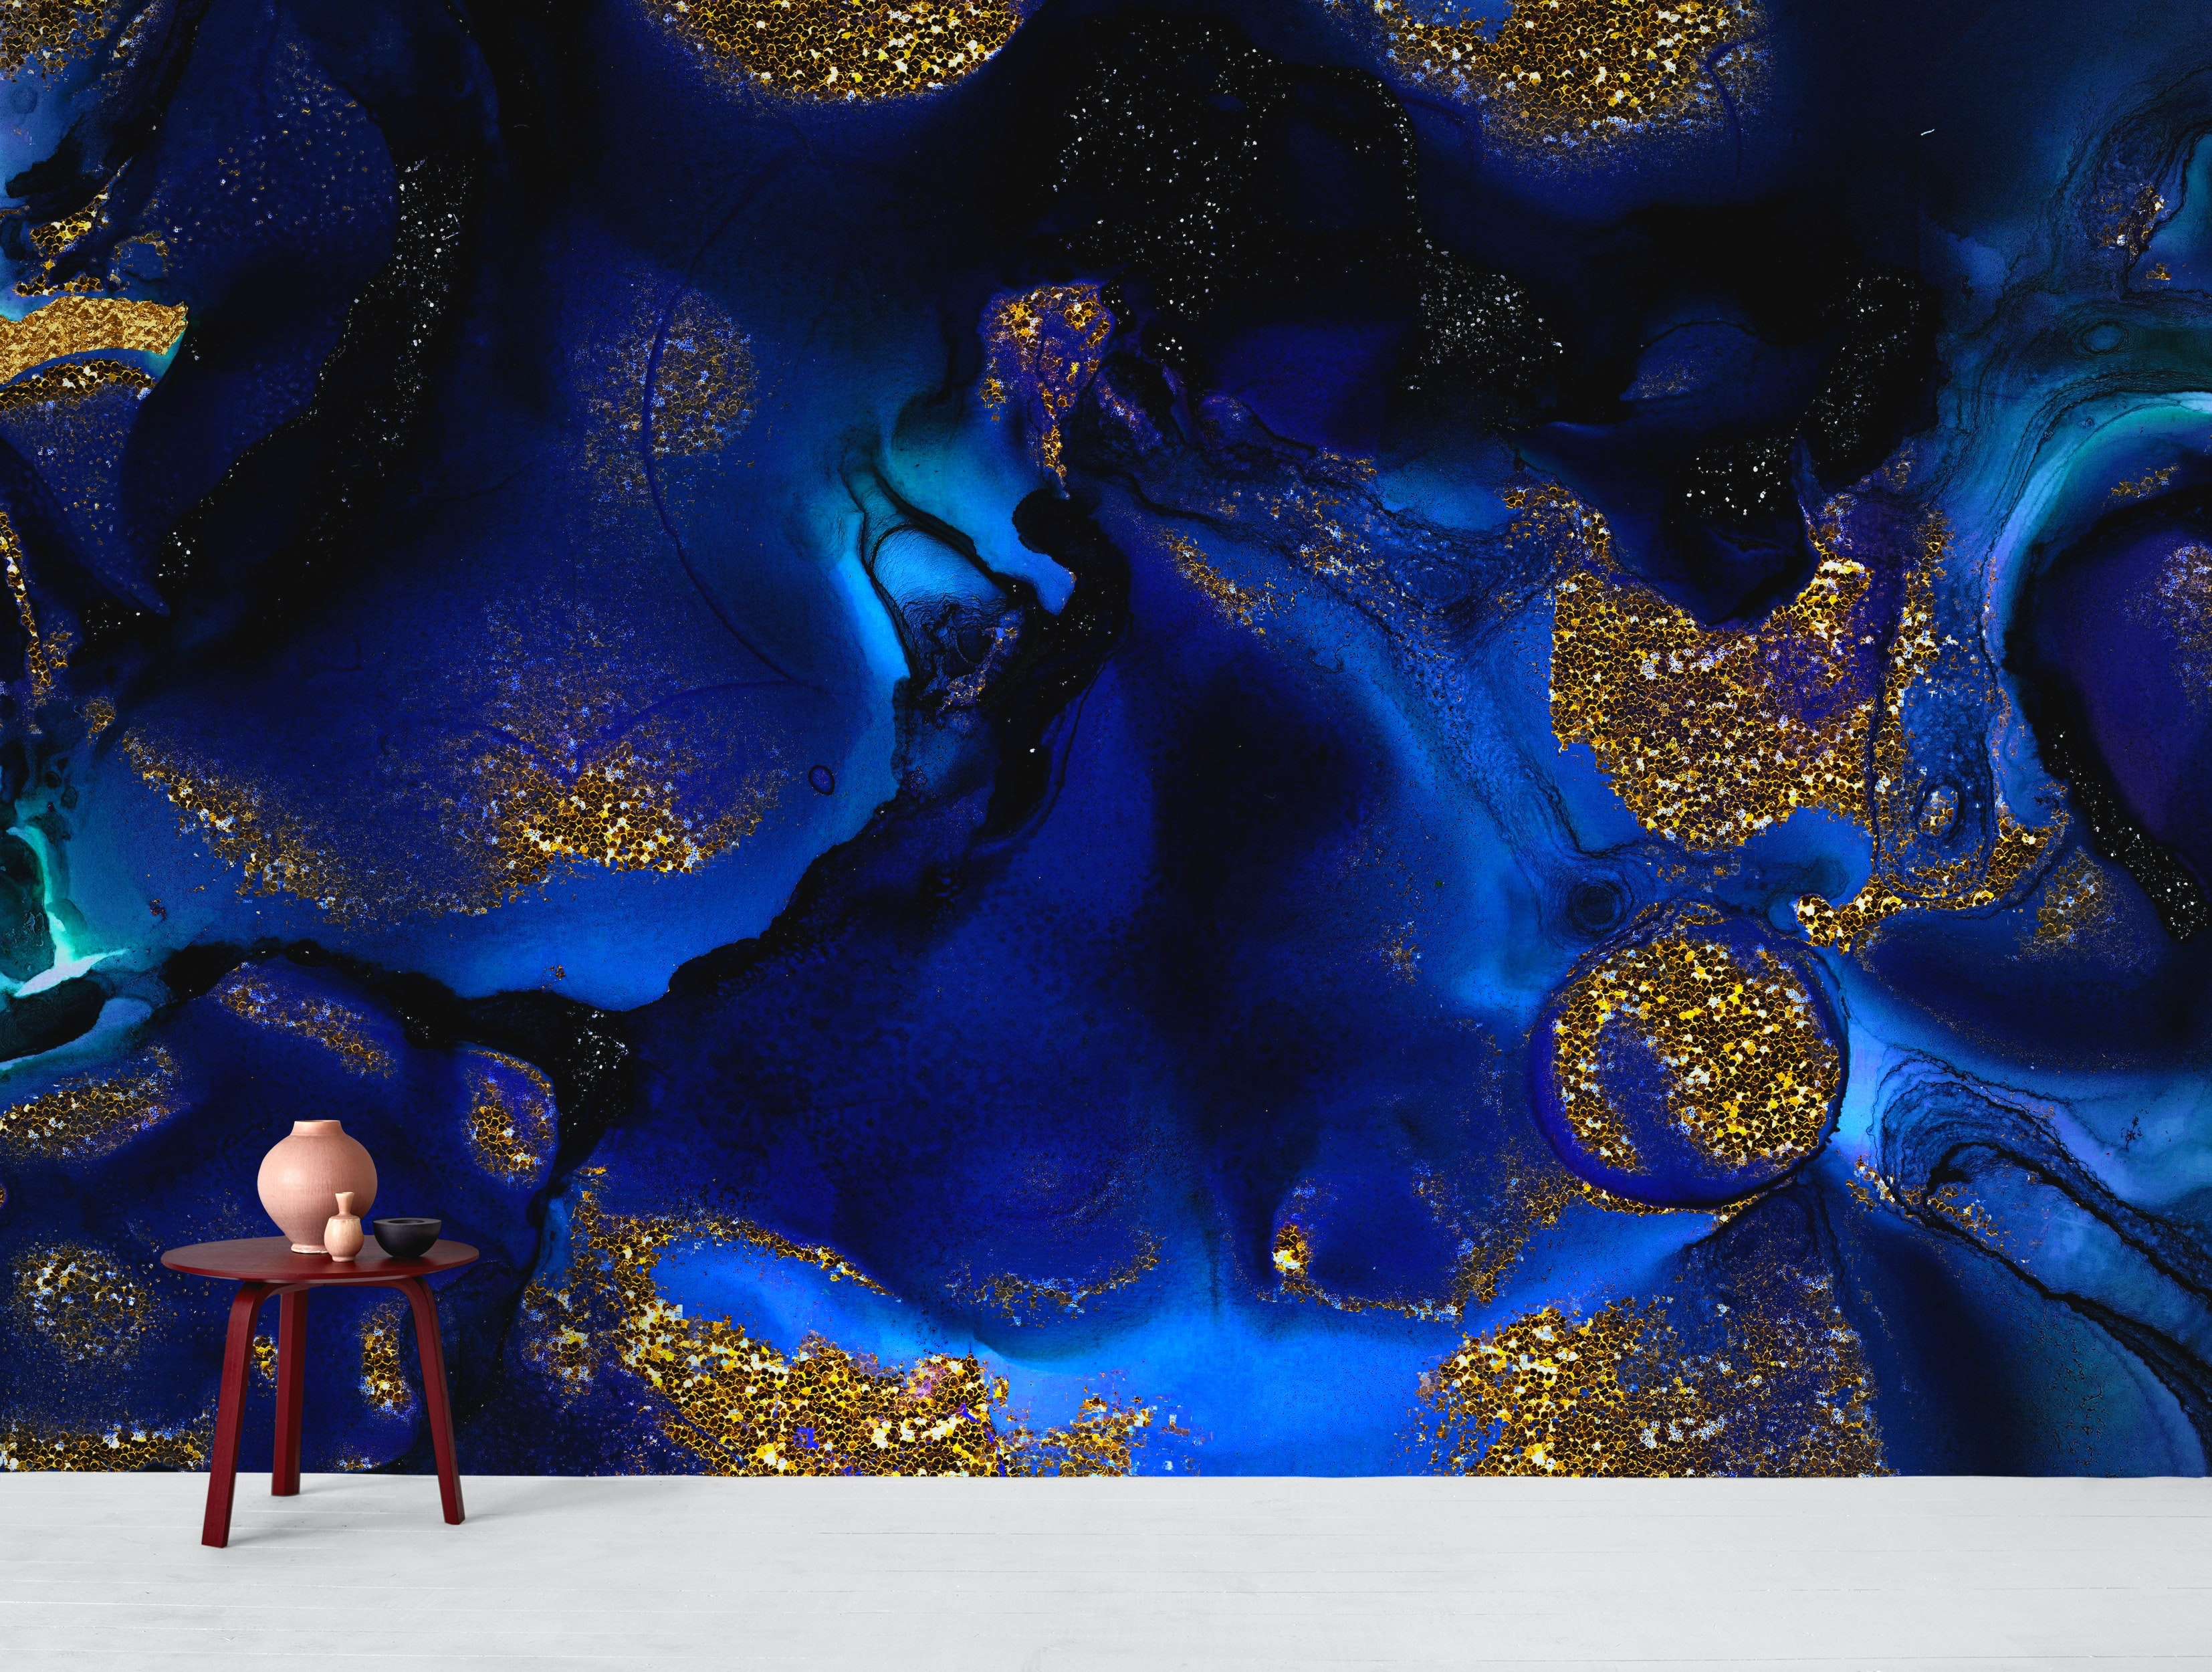 Buy Indigo Blue Marble And Gold Glitter Wallpaper Free Us Shipping At Happywall Com